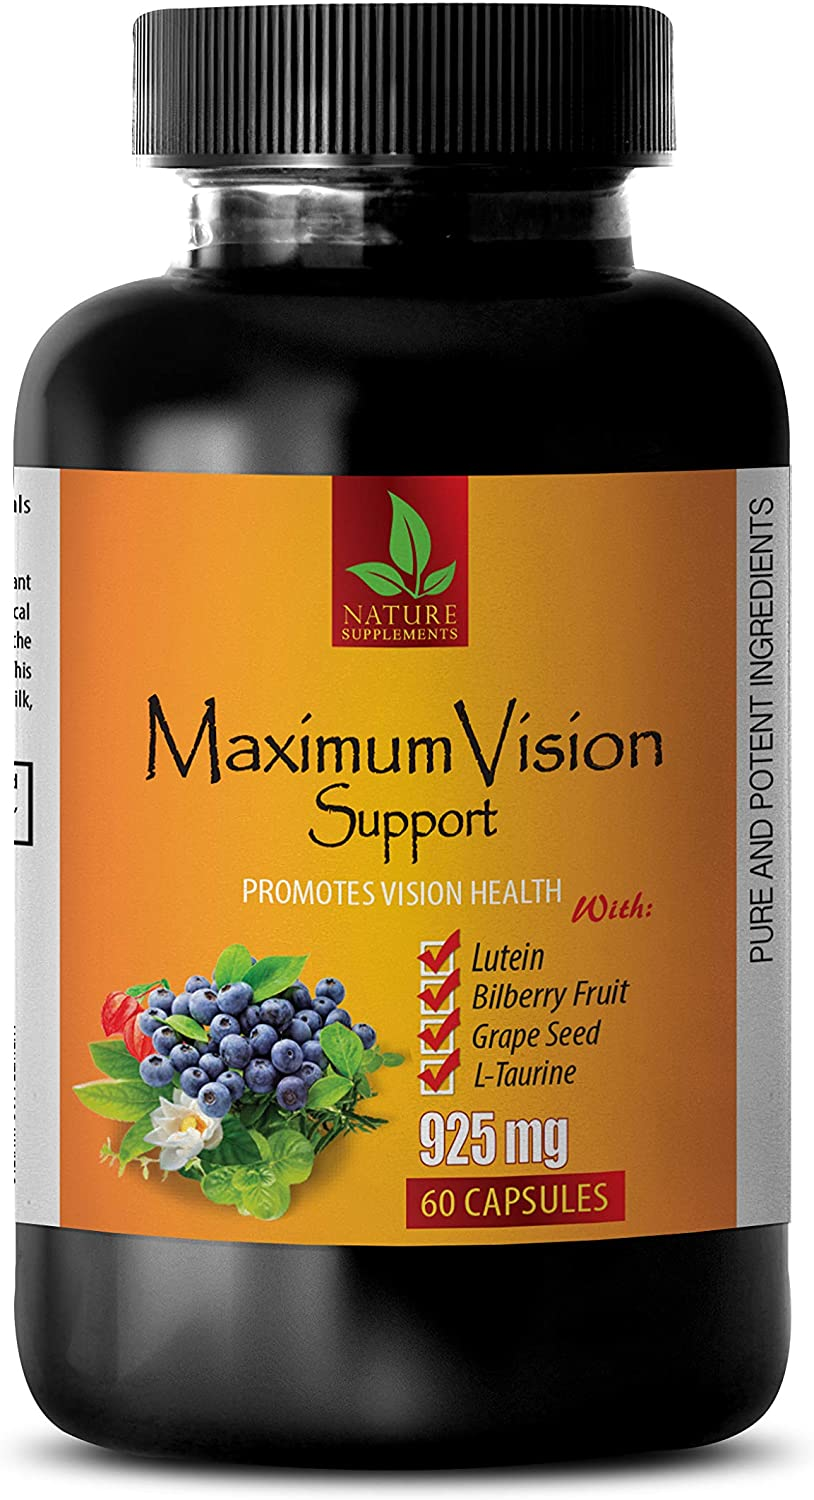 Vitamins for Eyes with Lutein and Bilberry - Maximum Vision Support - Promotes Vision Health - Lutein Eye Vitamins - 1 Bottle 60 Capsules